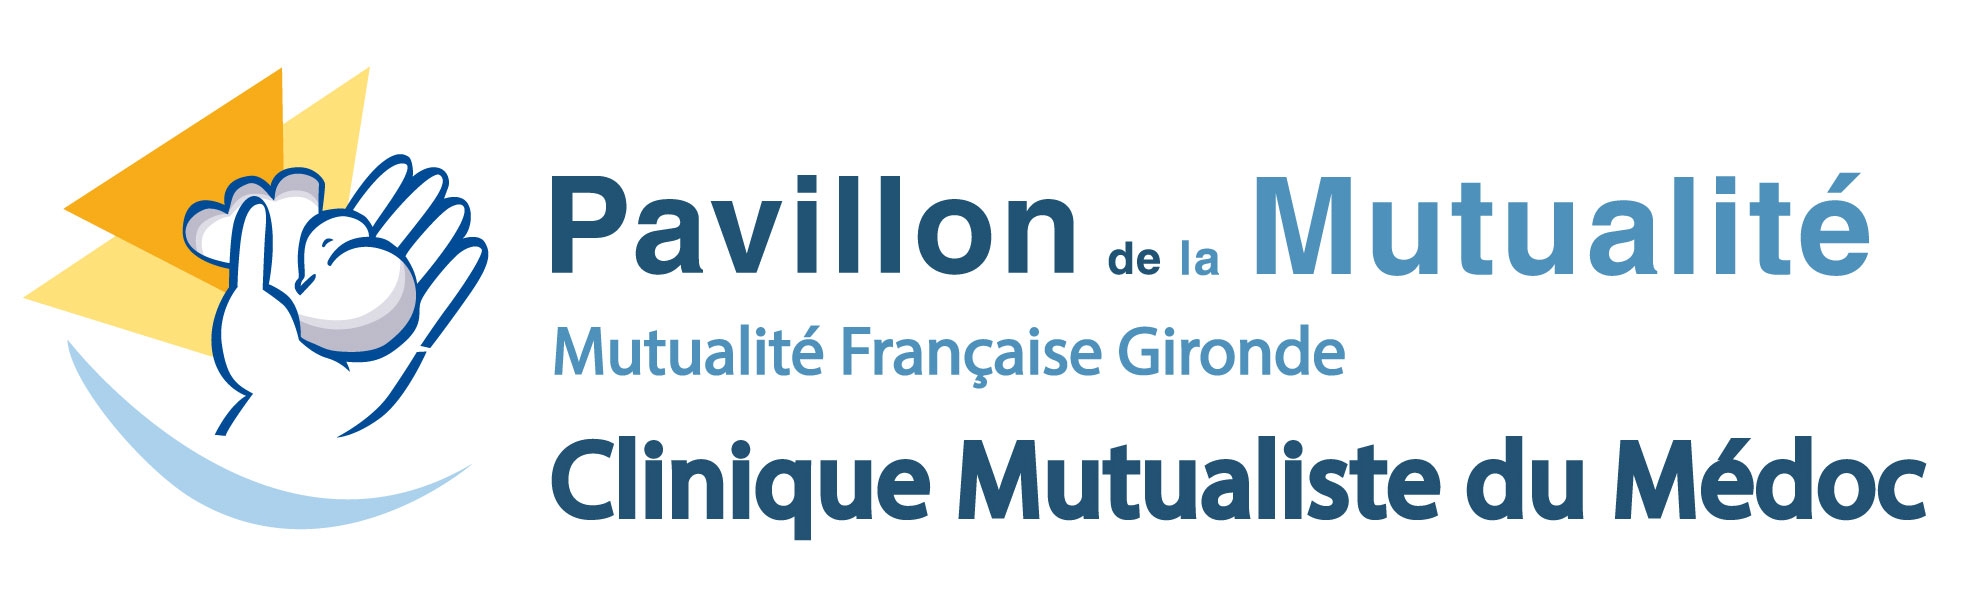 Clinique Mutualiste Médoc